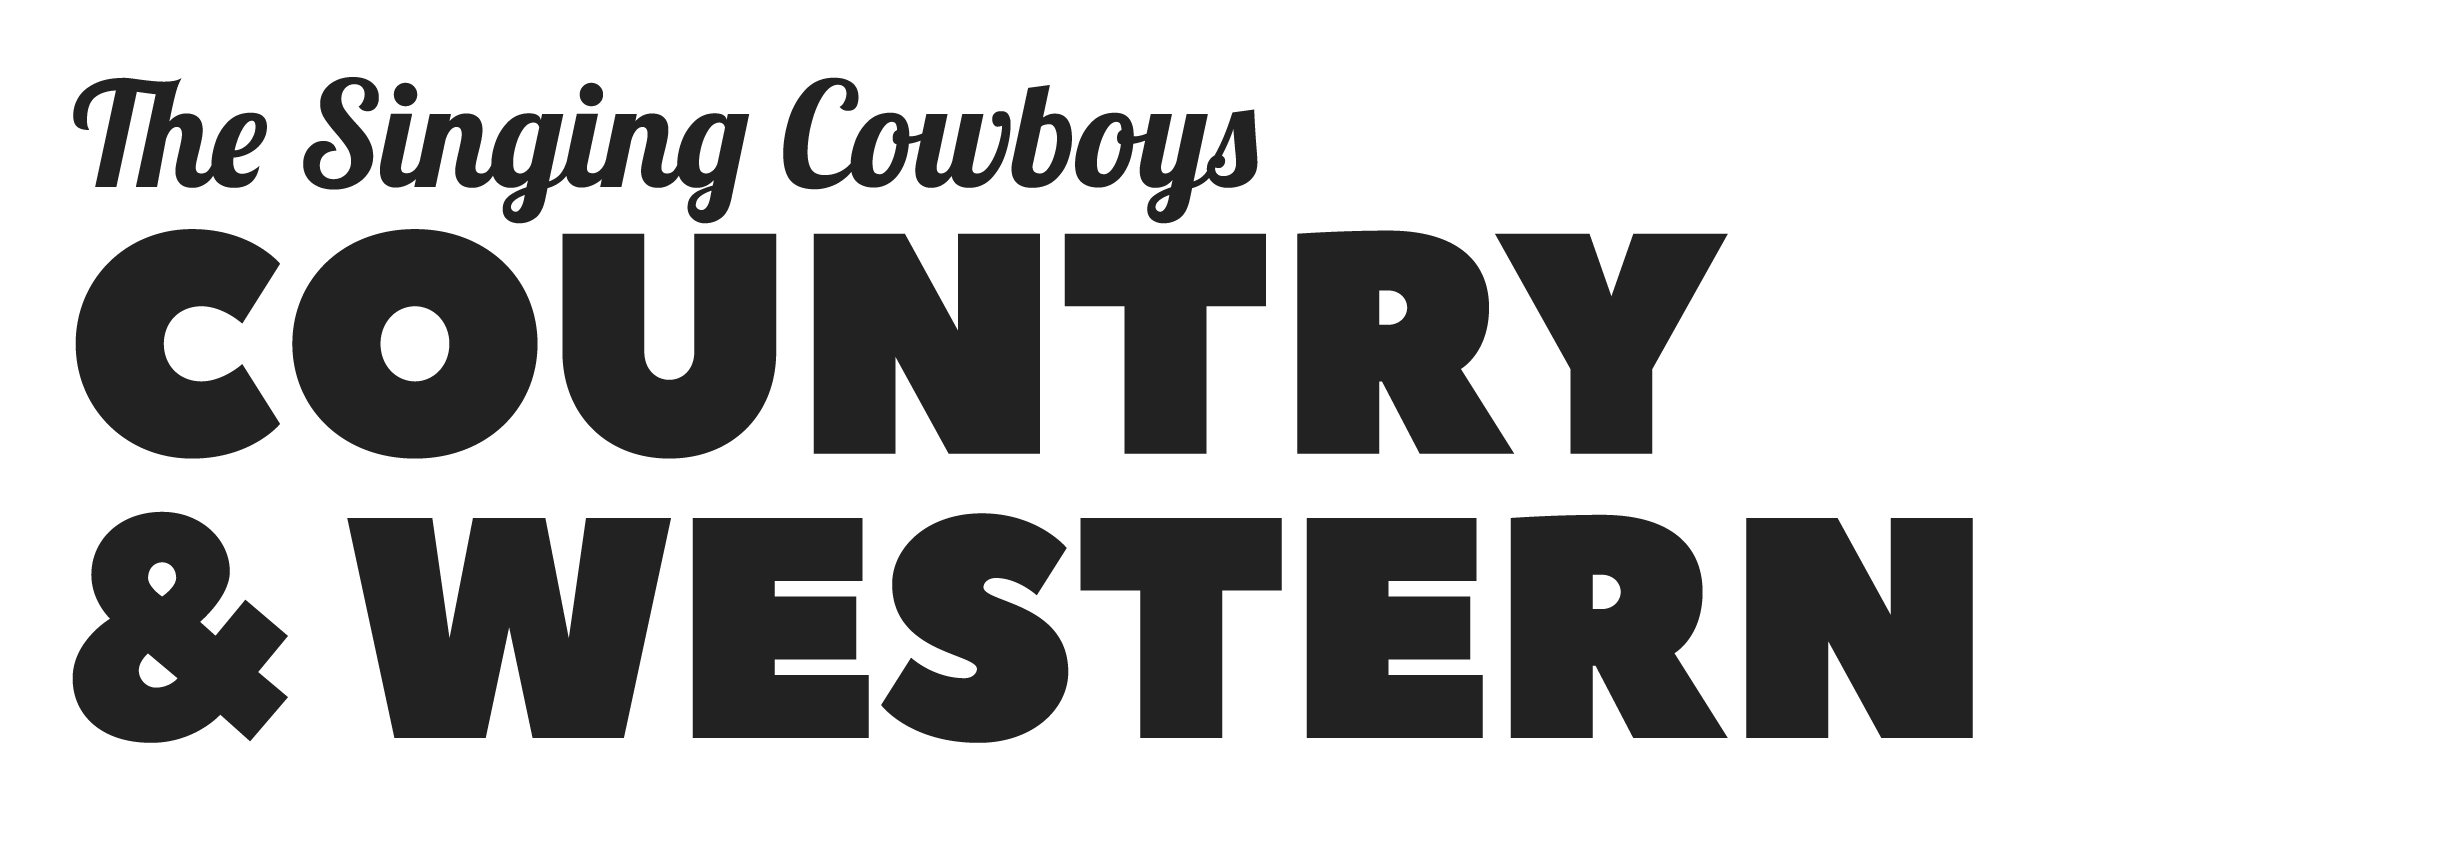 The Singing Cowboys Country & Western